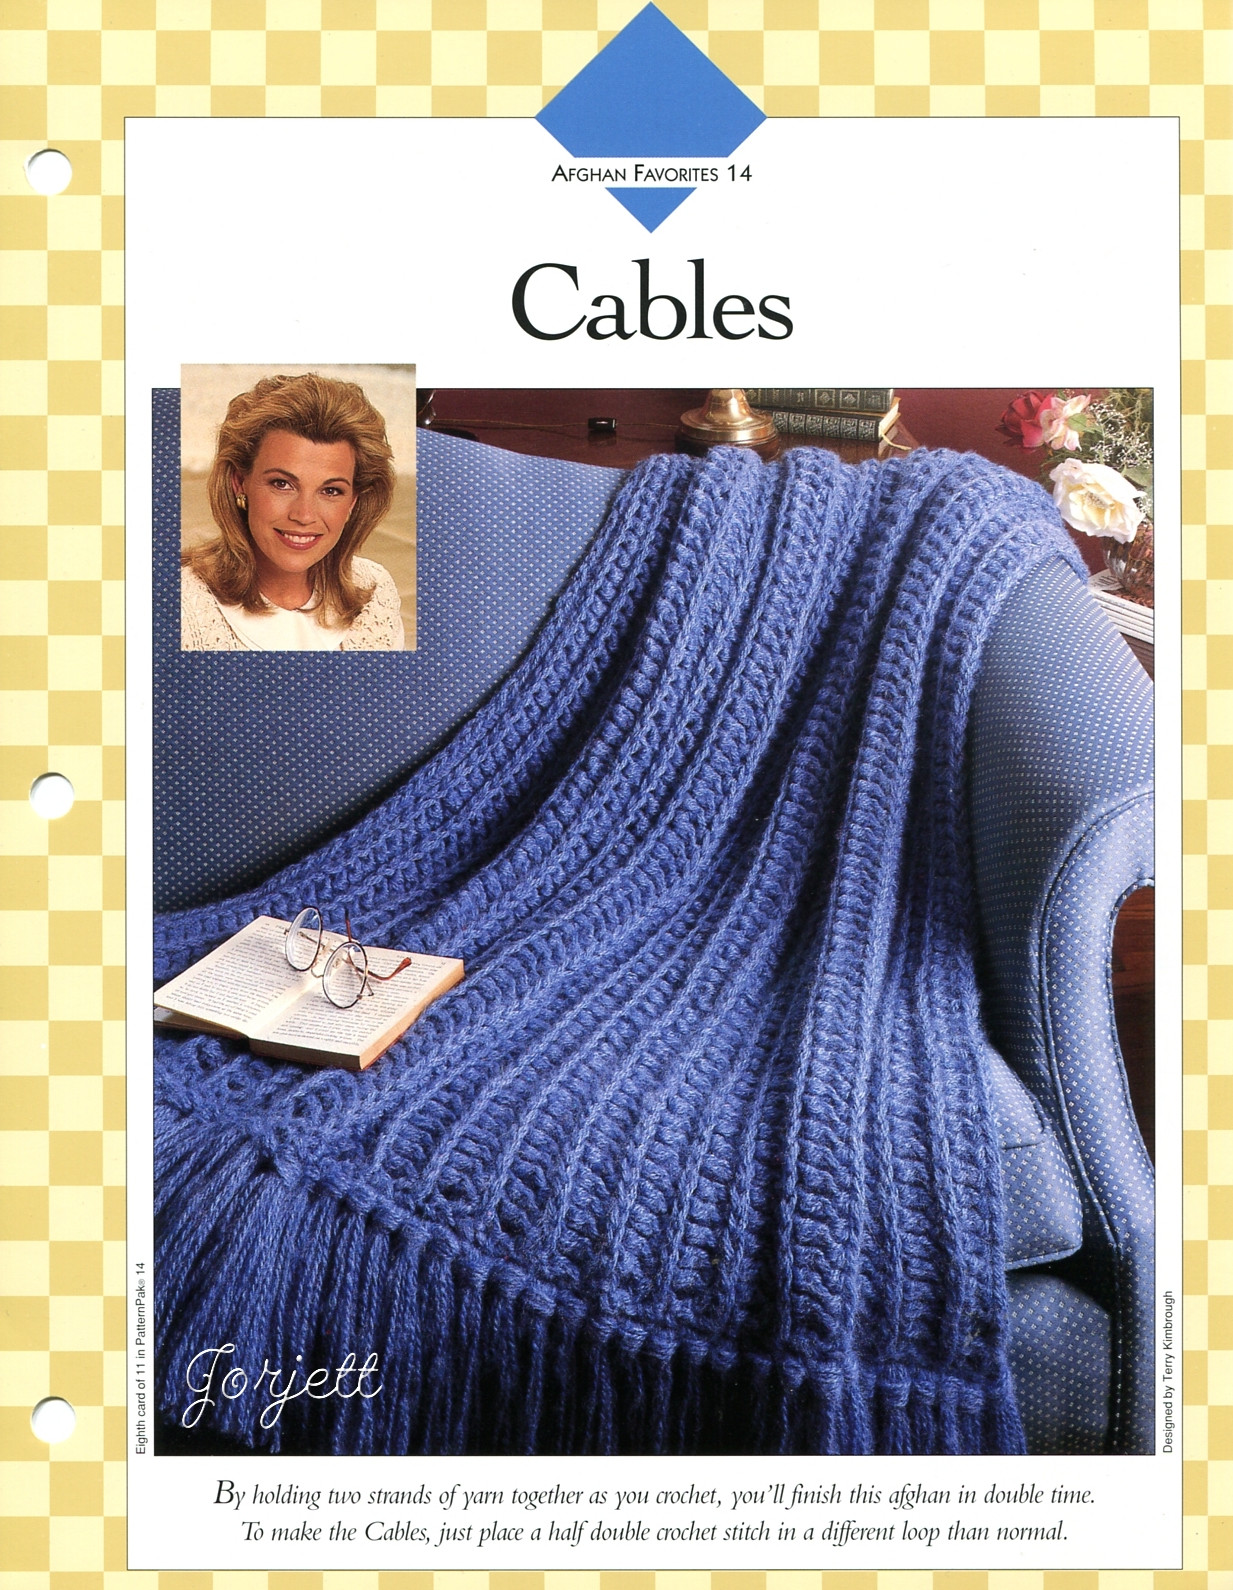 Crochet Afghan Patterns With Q Hook : Q HOOK AFGHAN PATTERNS Free Patterns